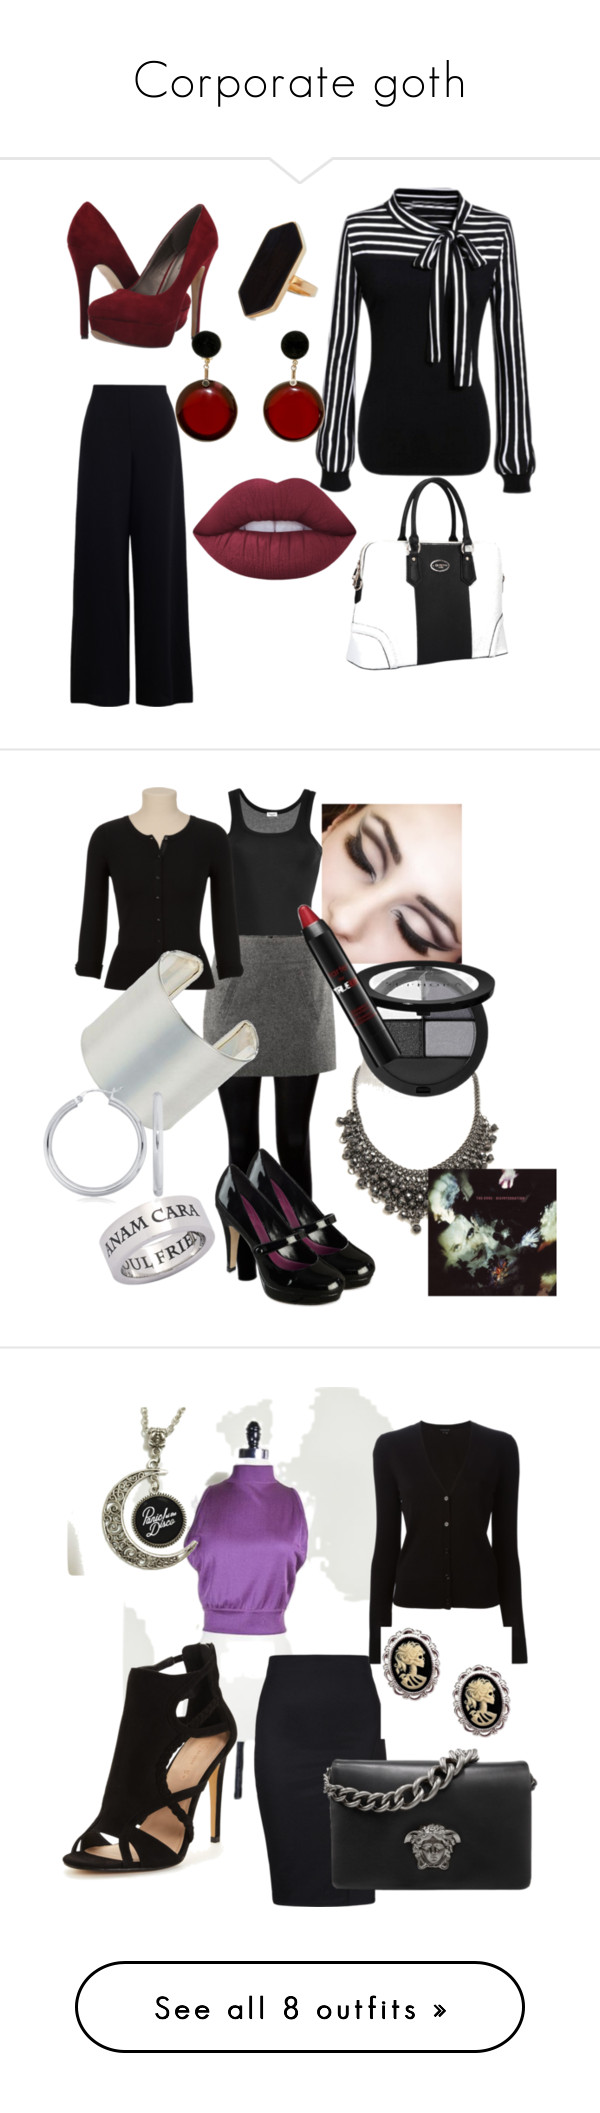 """""""Corporate goth"""" by barbarasprague liked on Polyvore"""